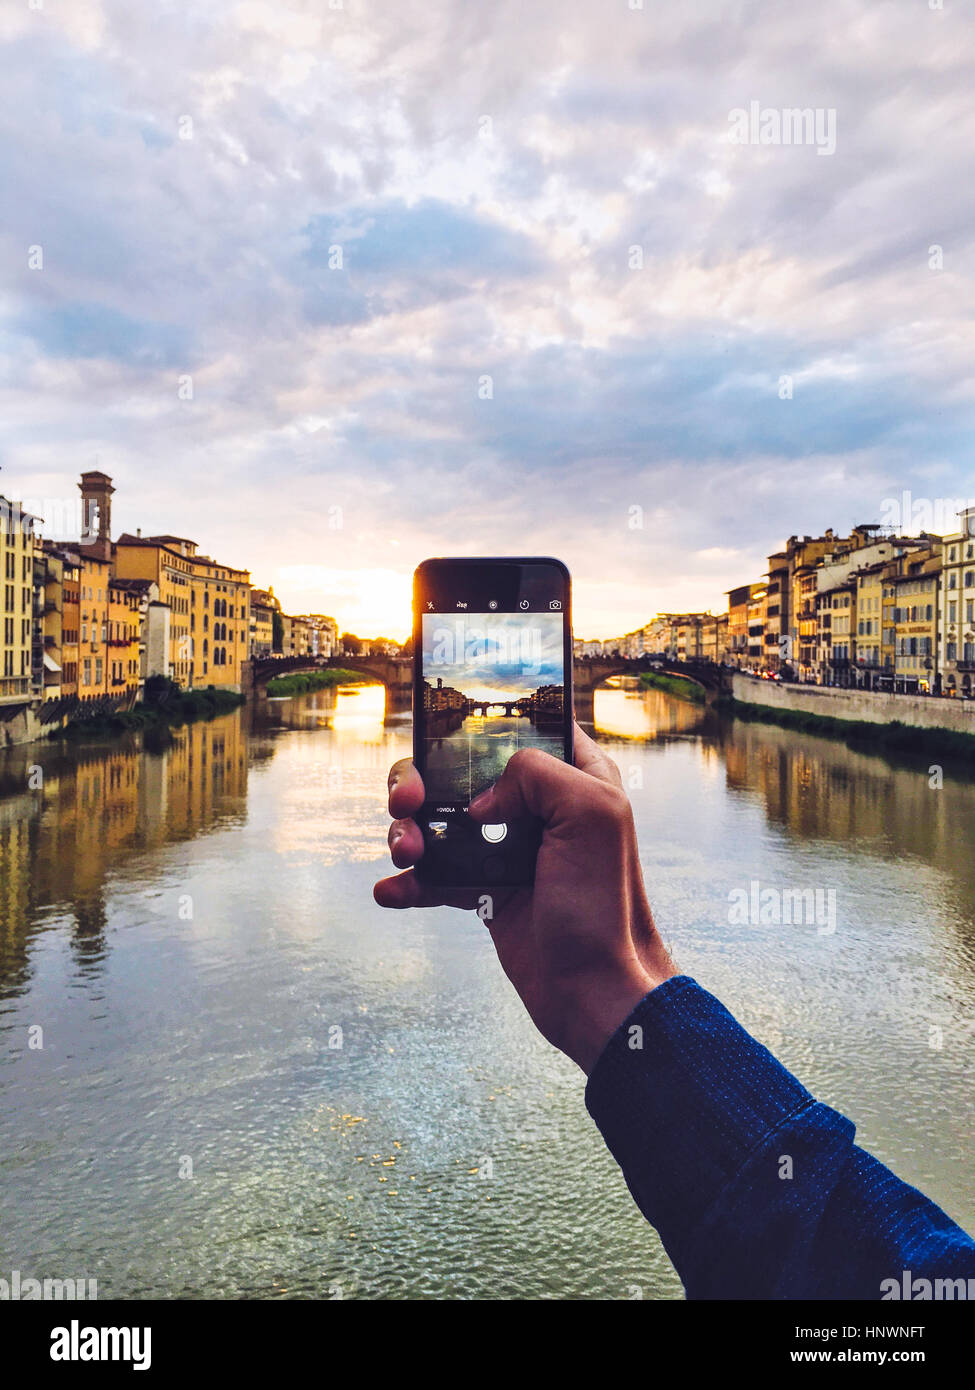 Man holding smartphone for take a photo during sunset - Stock Image